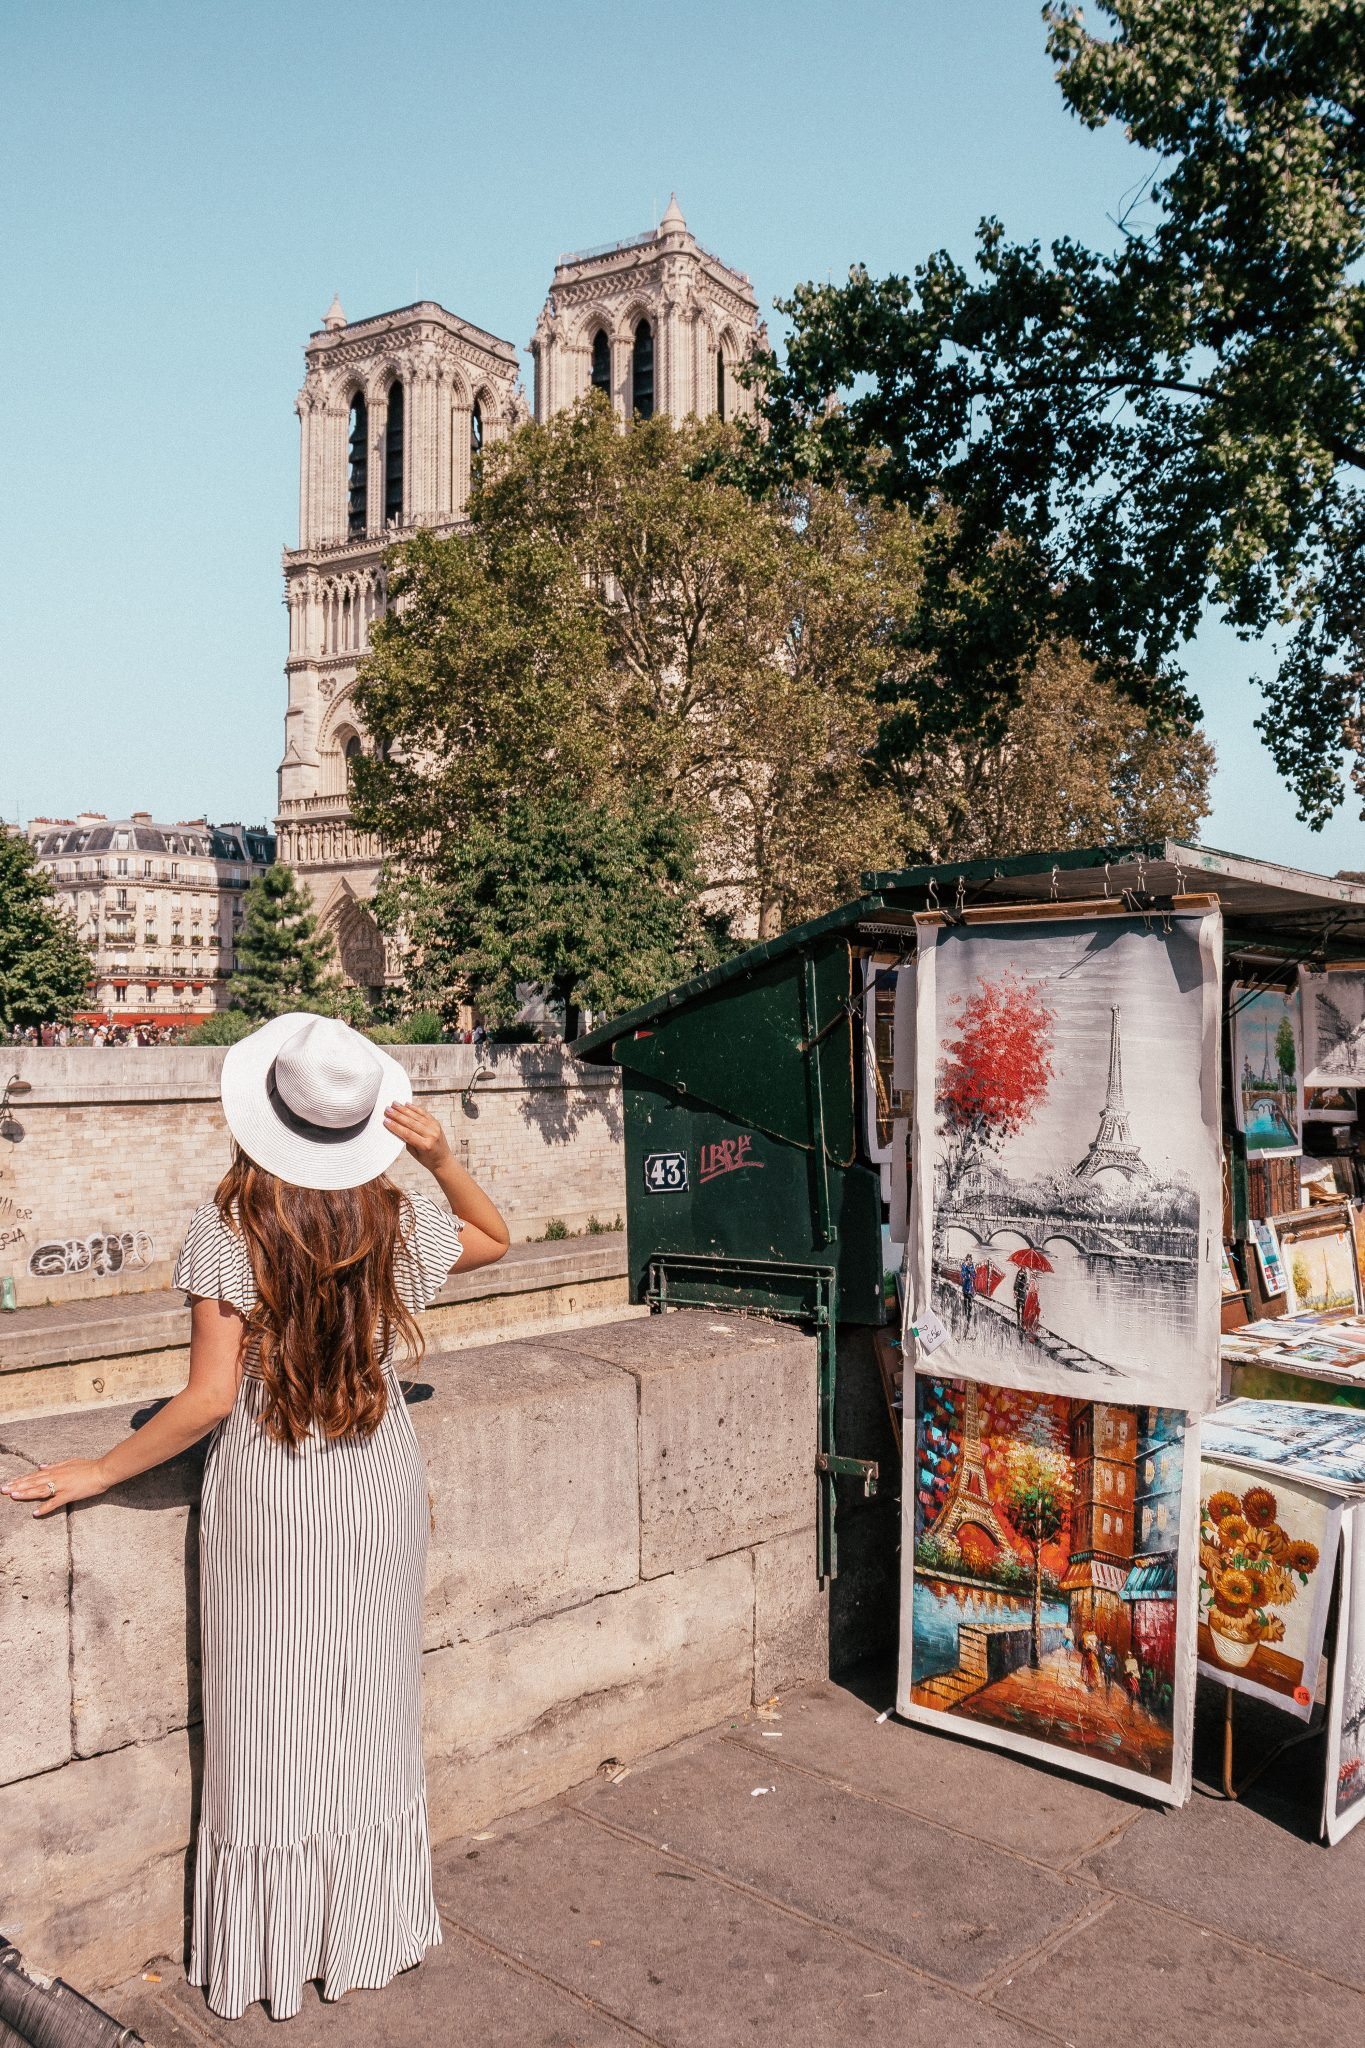 12 Best Photo Spots in Paris For Epic Instagram Shots - Les Bouquinistes